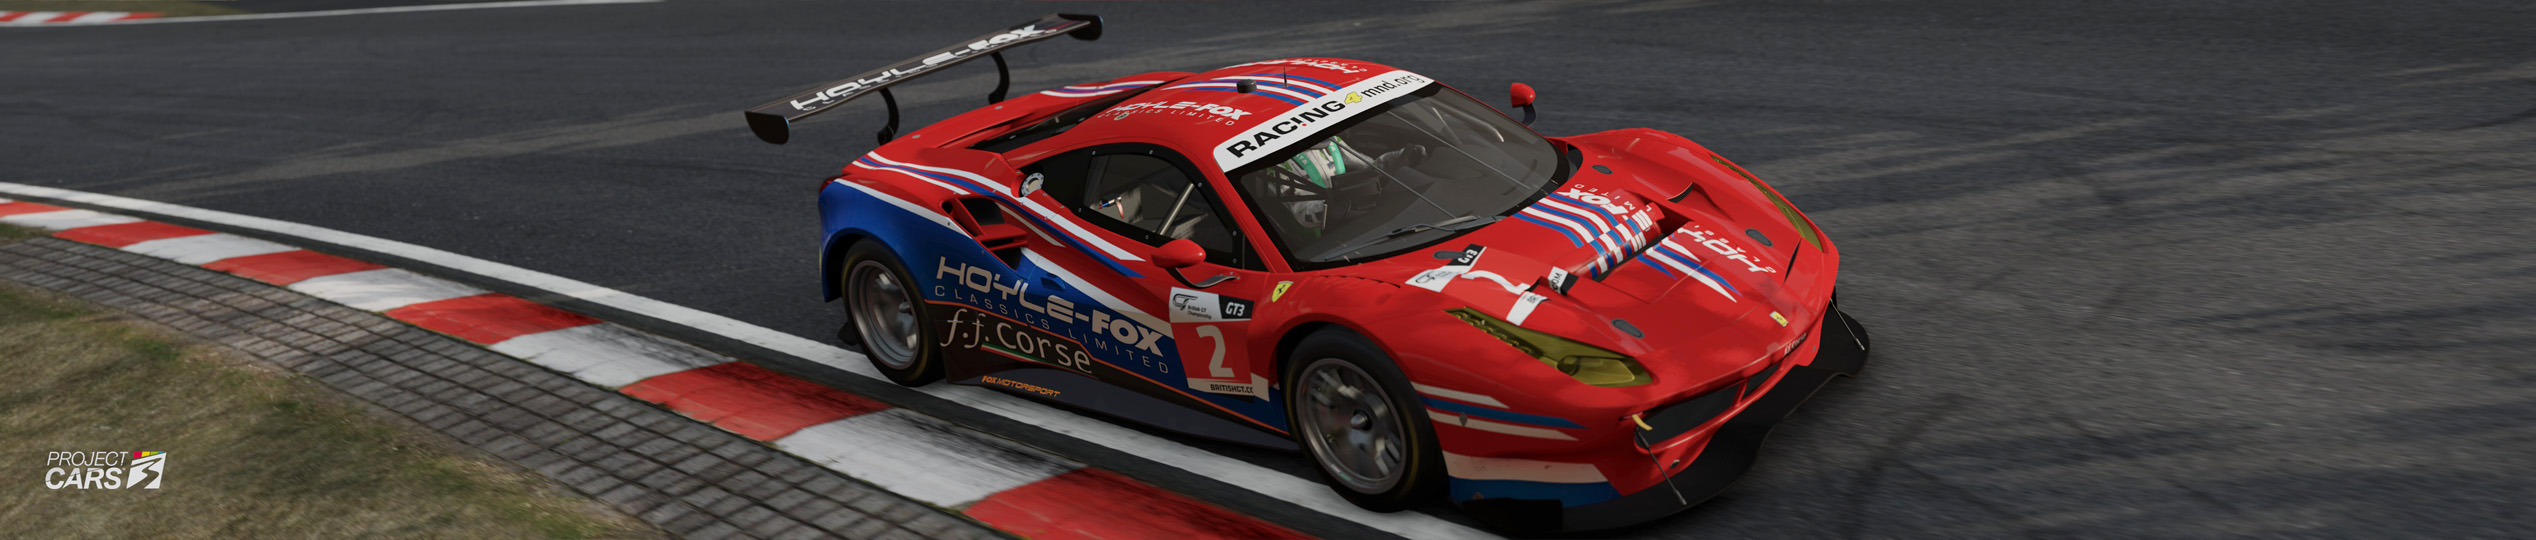 9b PROJECT CARS 3 GT3 at NORDSCHLEIFE crop copy.jpg